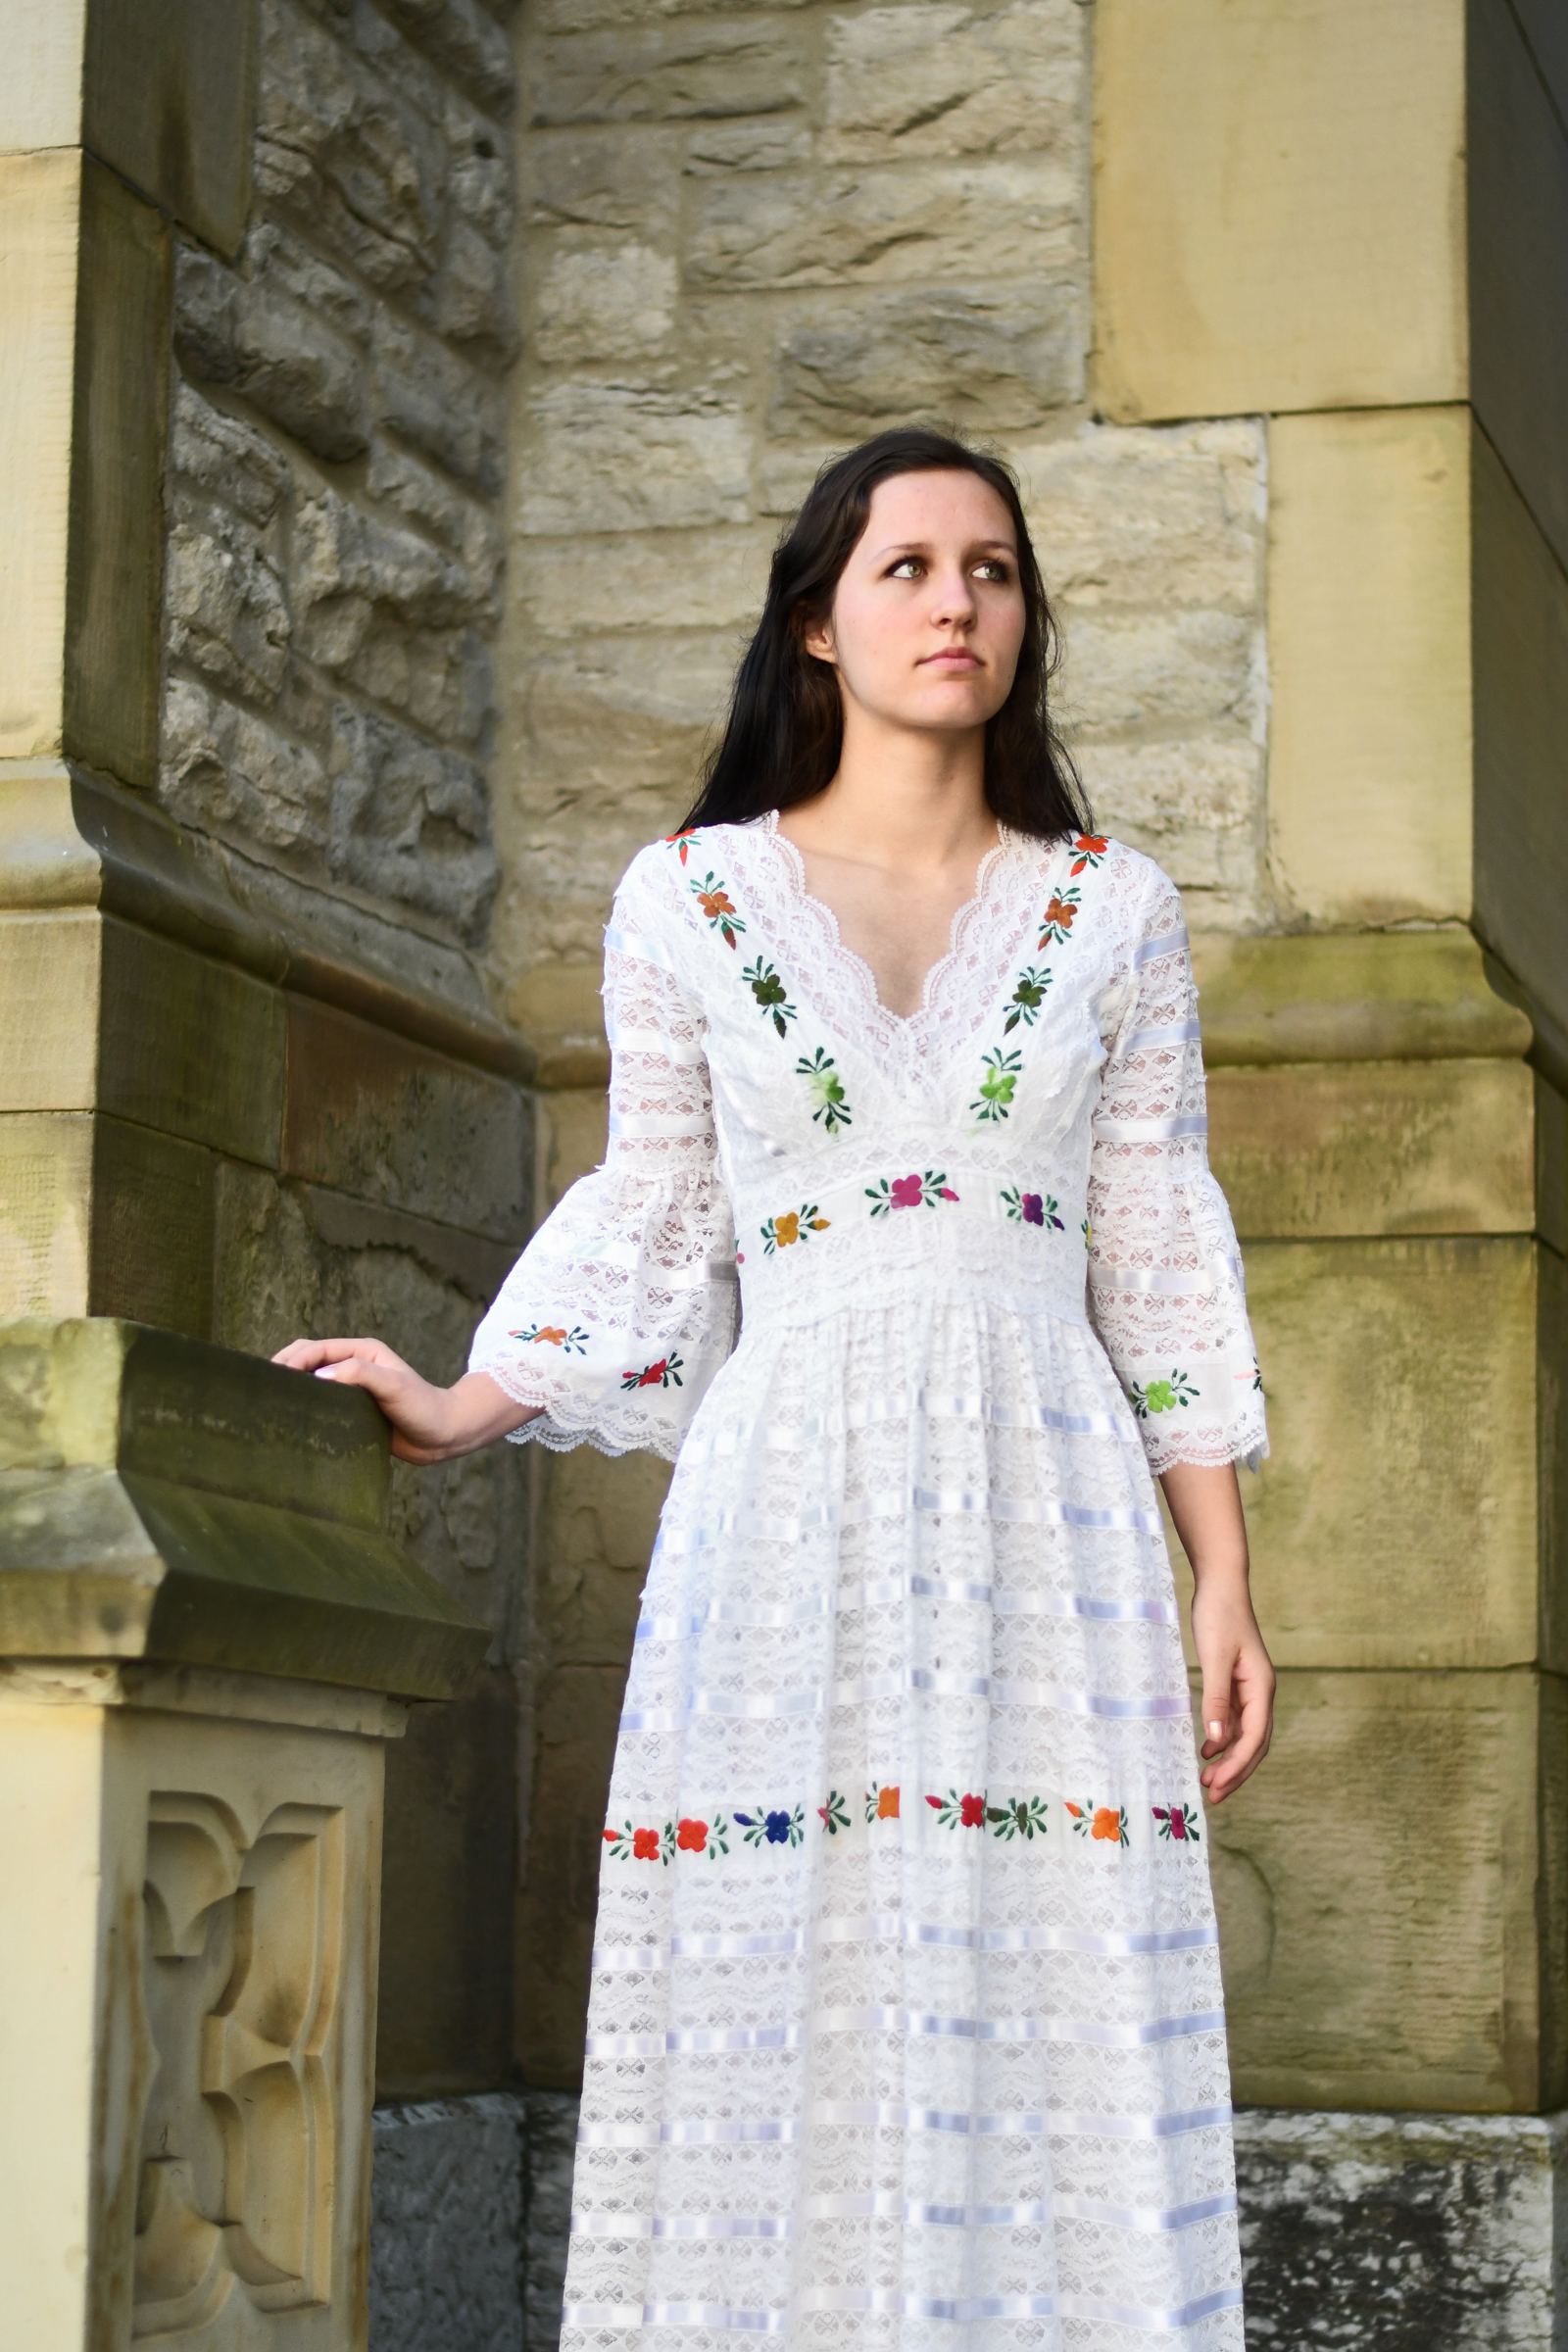 paigemexicanweddingdress.jpg